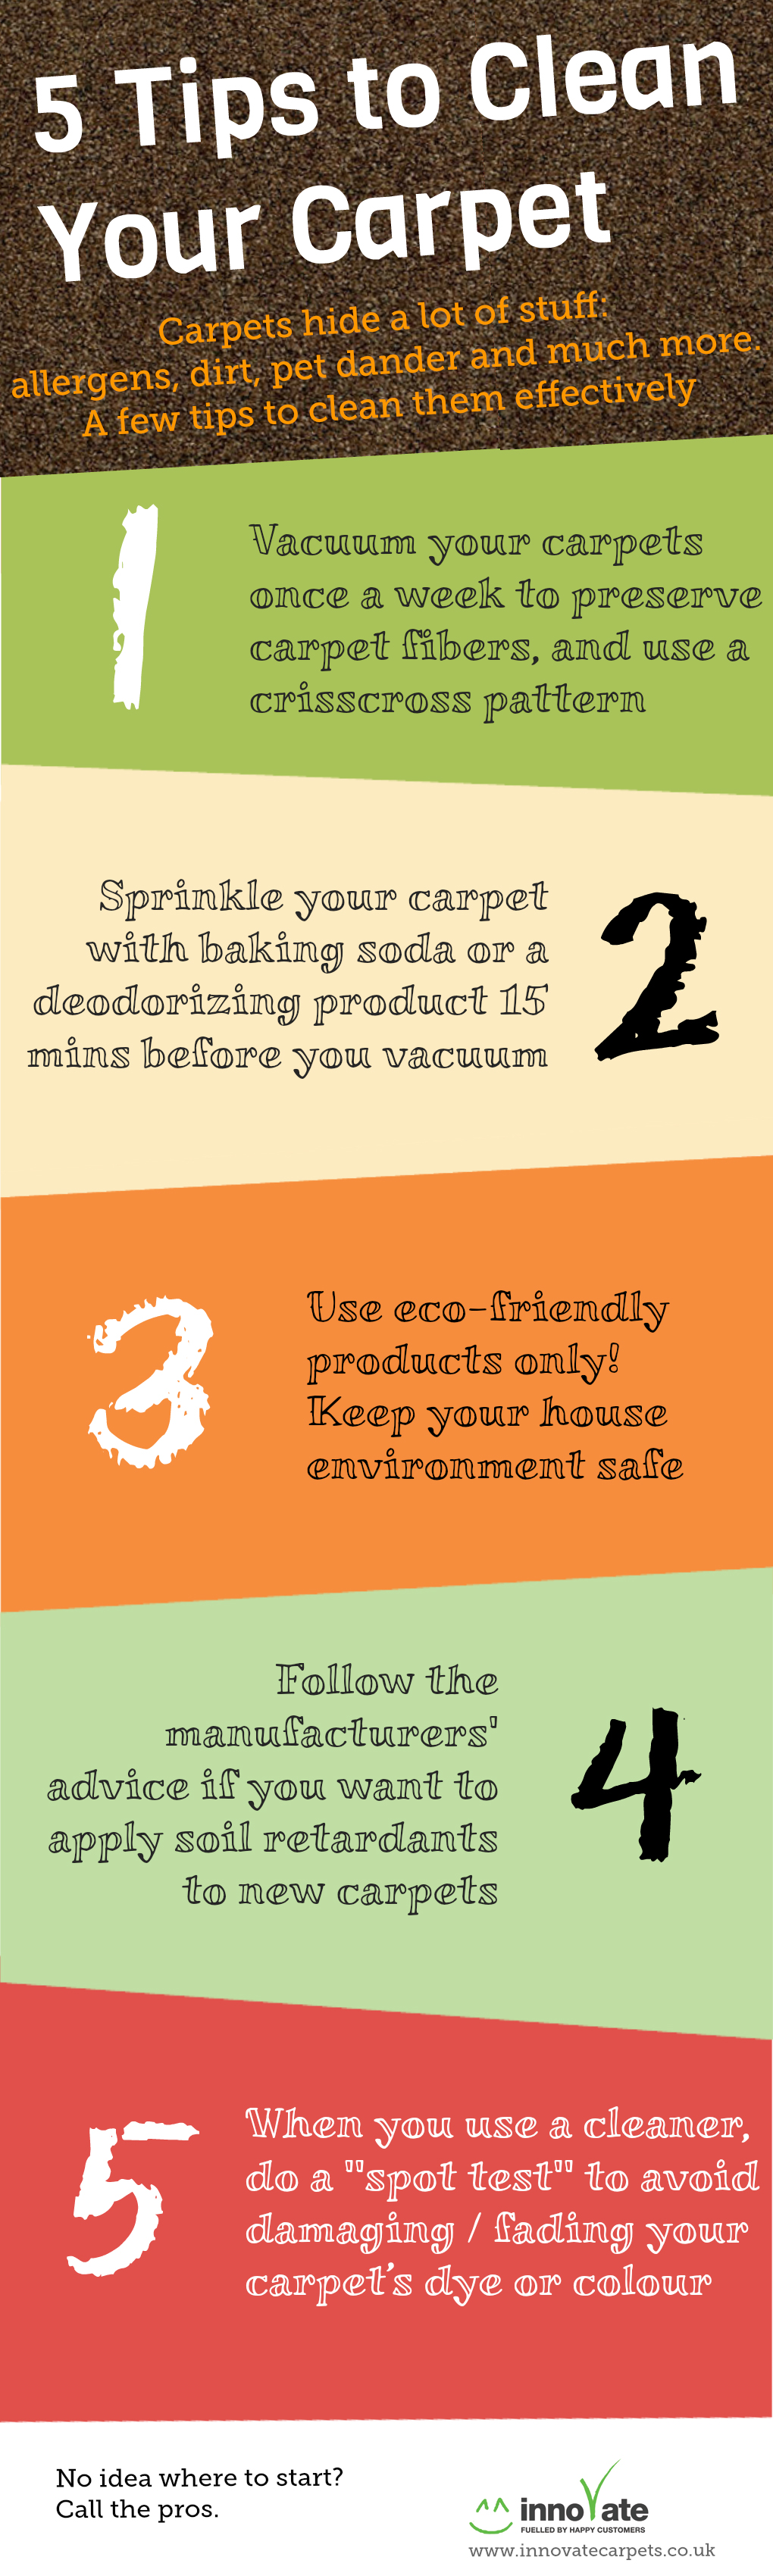 5 tips to clean your carpet infographic innovate carpet cleaning - Five tips for quick cleaning ...